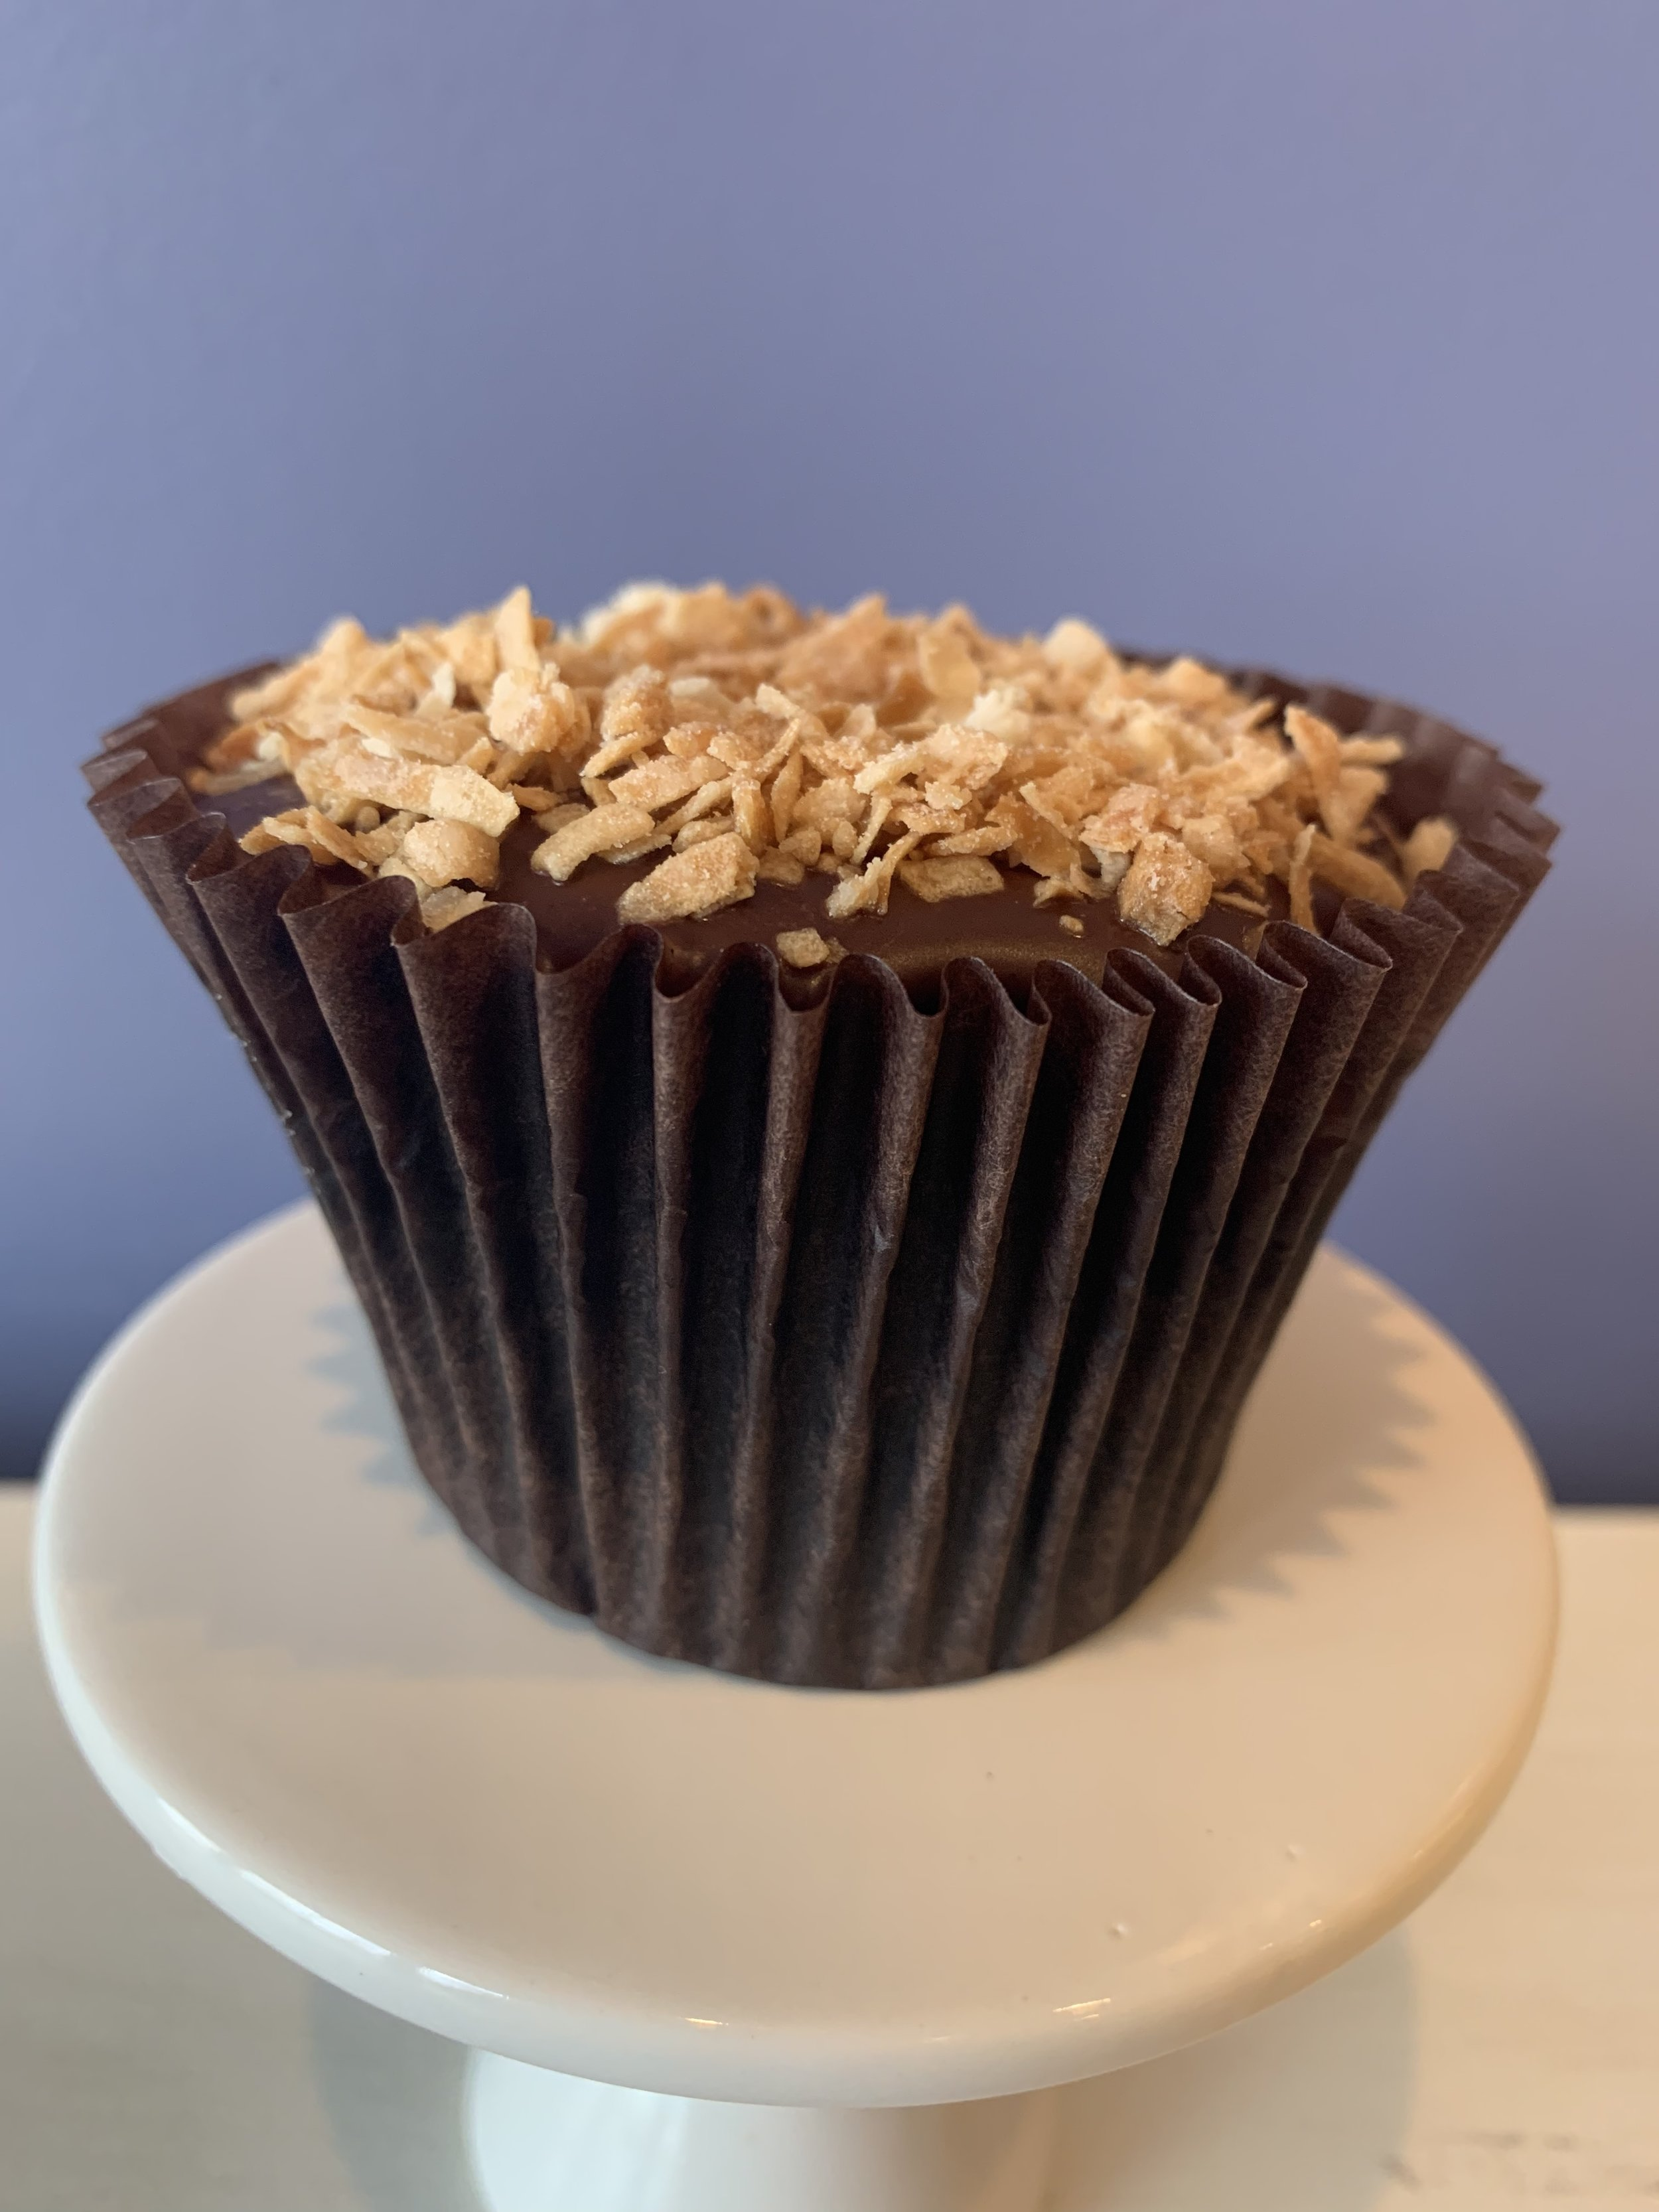 Mallow Cup - Double chocolate cake filled with marshmallow buttercream topped with chocolate glaze and toasted coconut.